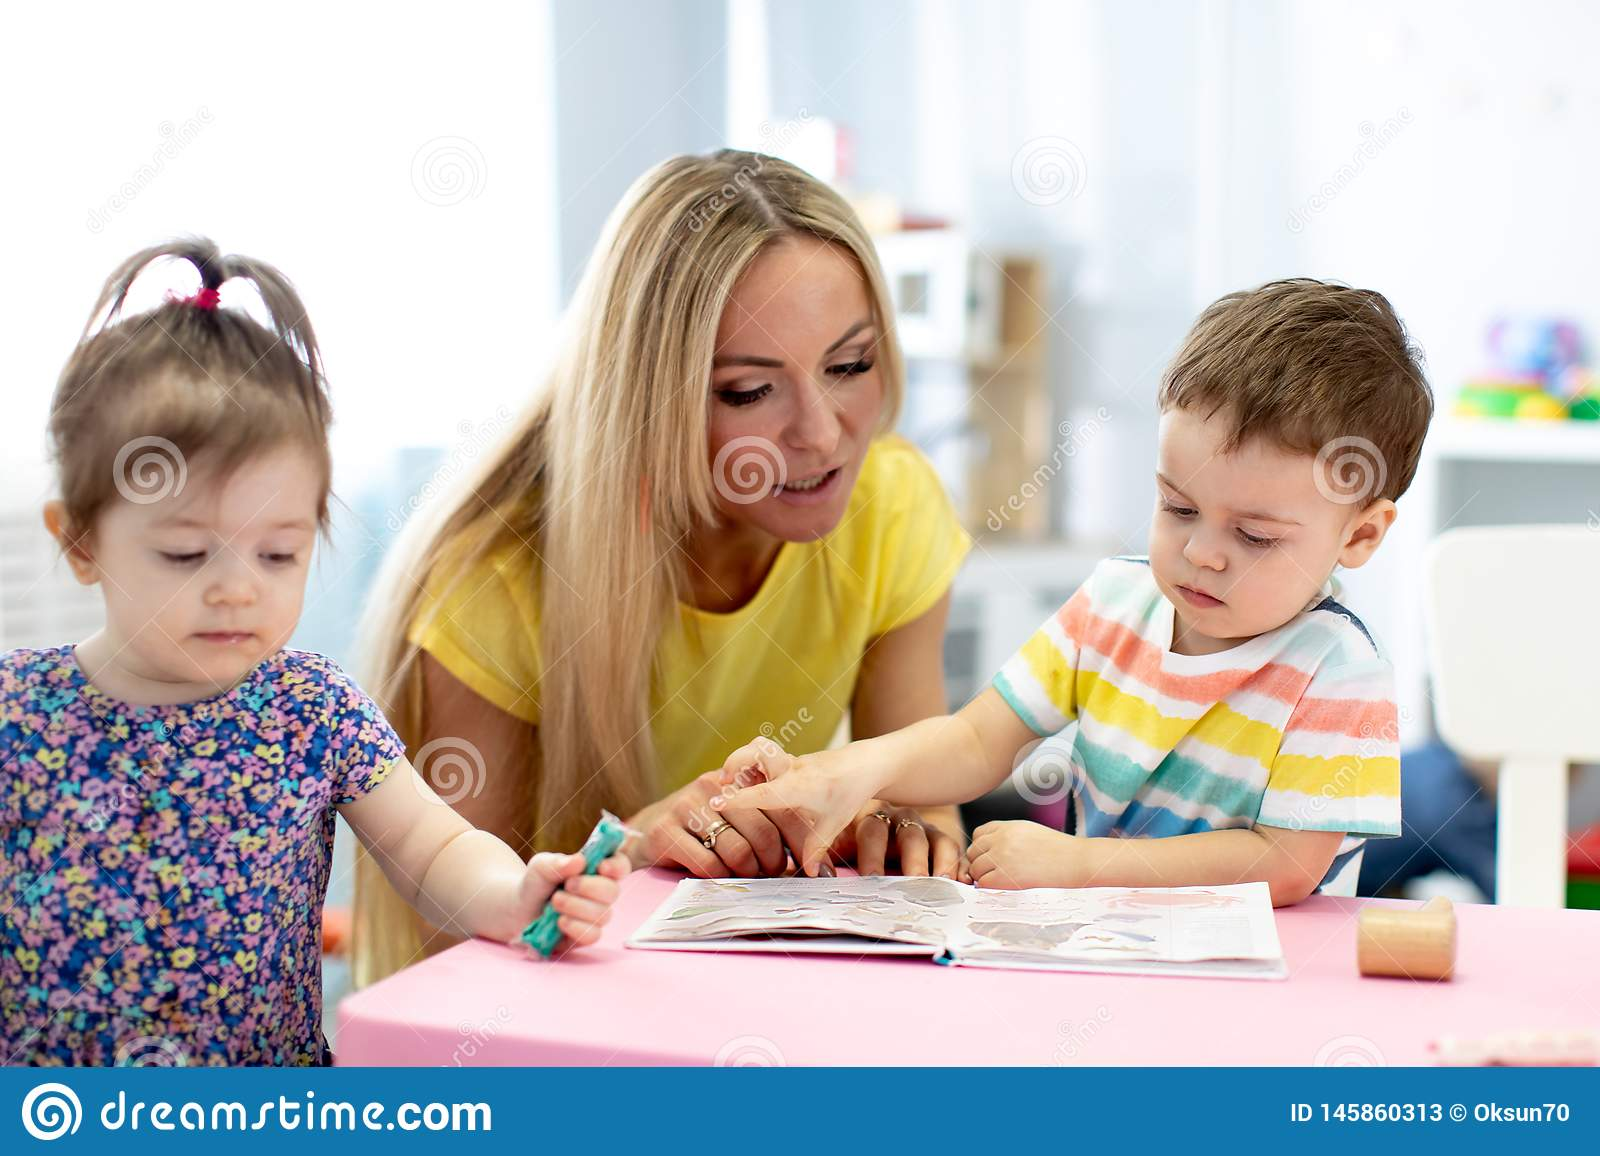 day-care-worker-children-kids-reading-book-kindergarten-day-care-worker-children-reading-book-kindergarten-145860313.jpg?profile=RESIZE_400x